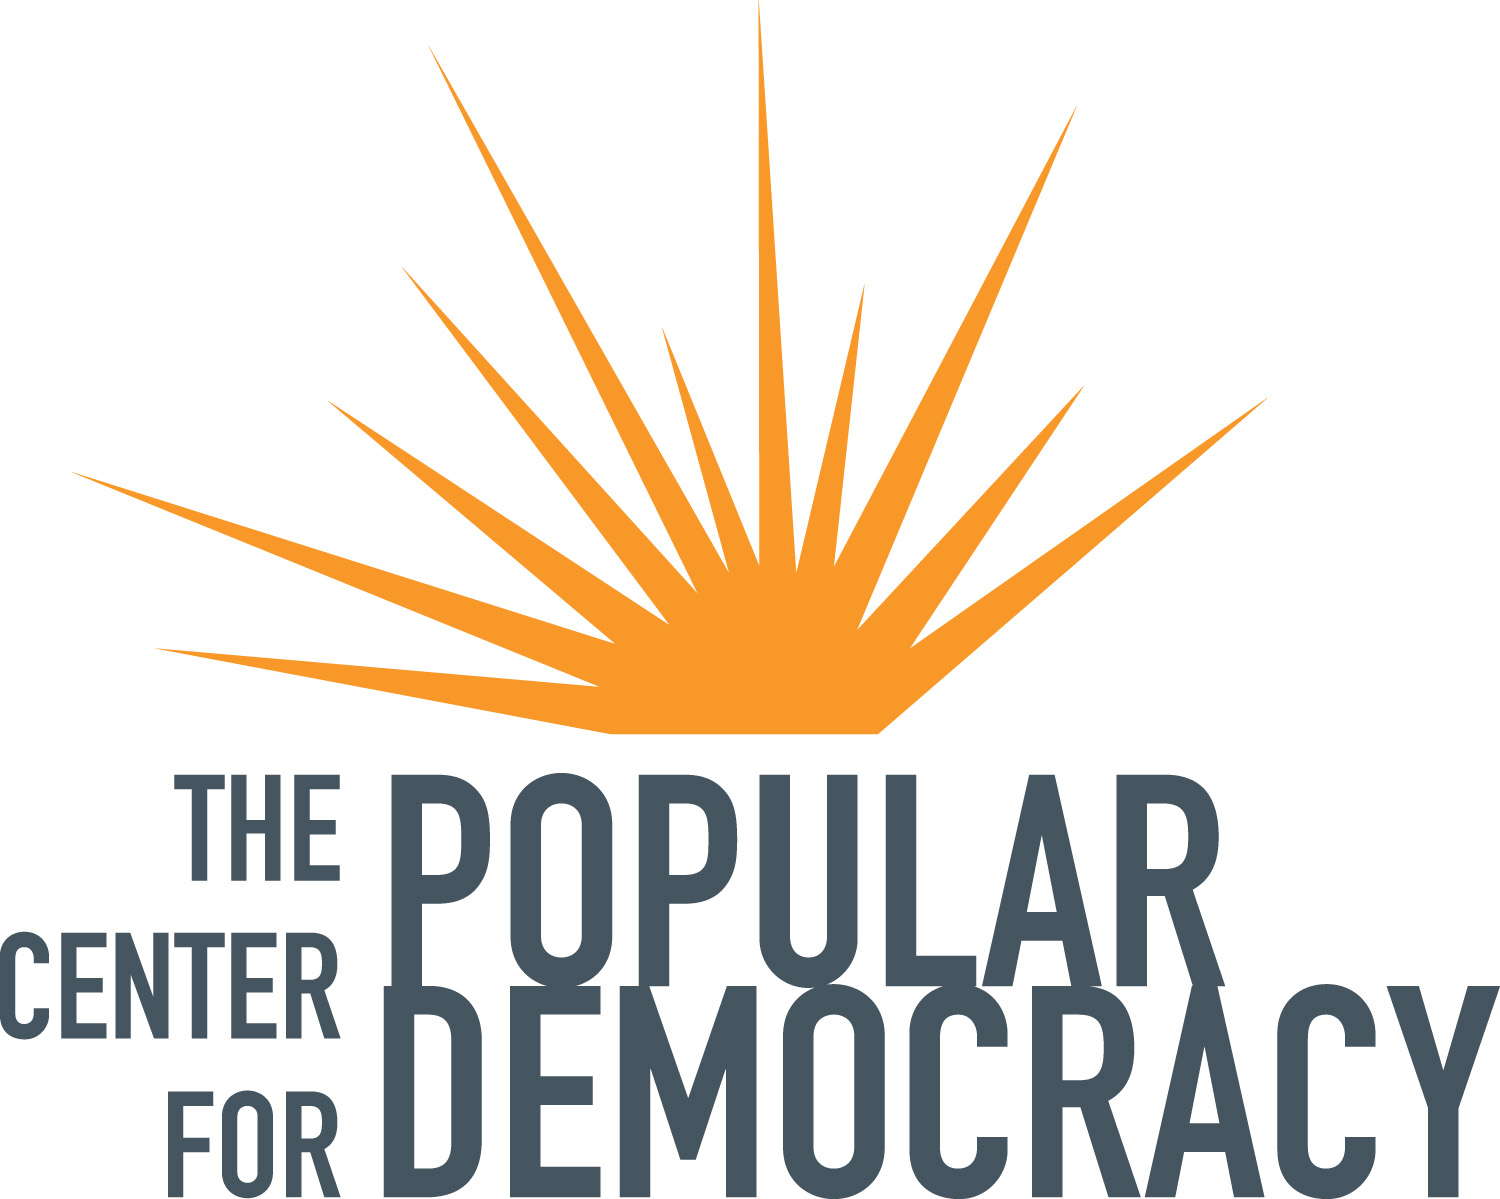 center for popular democracy logo ile ilgili görsel sonucu